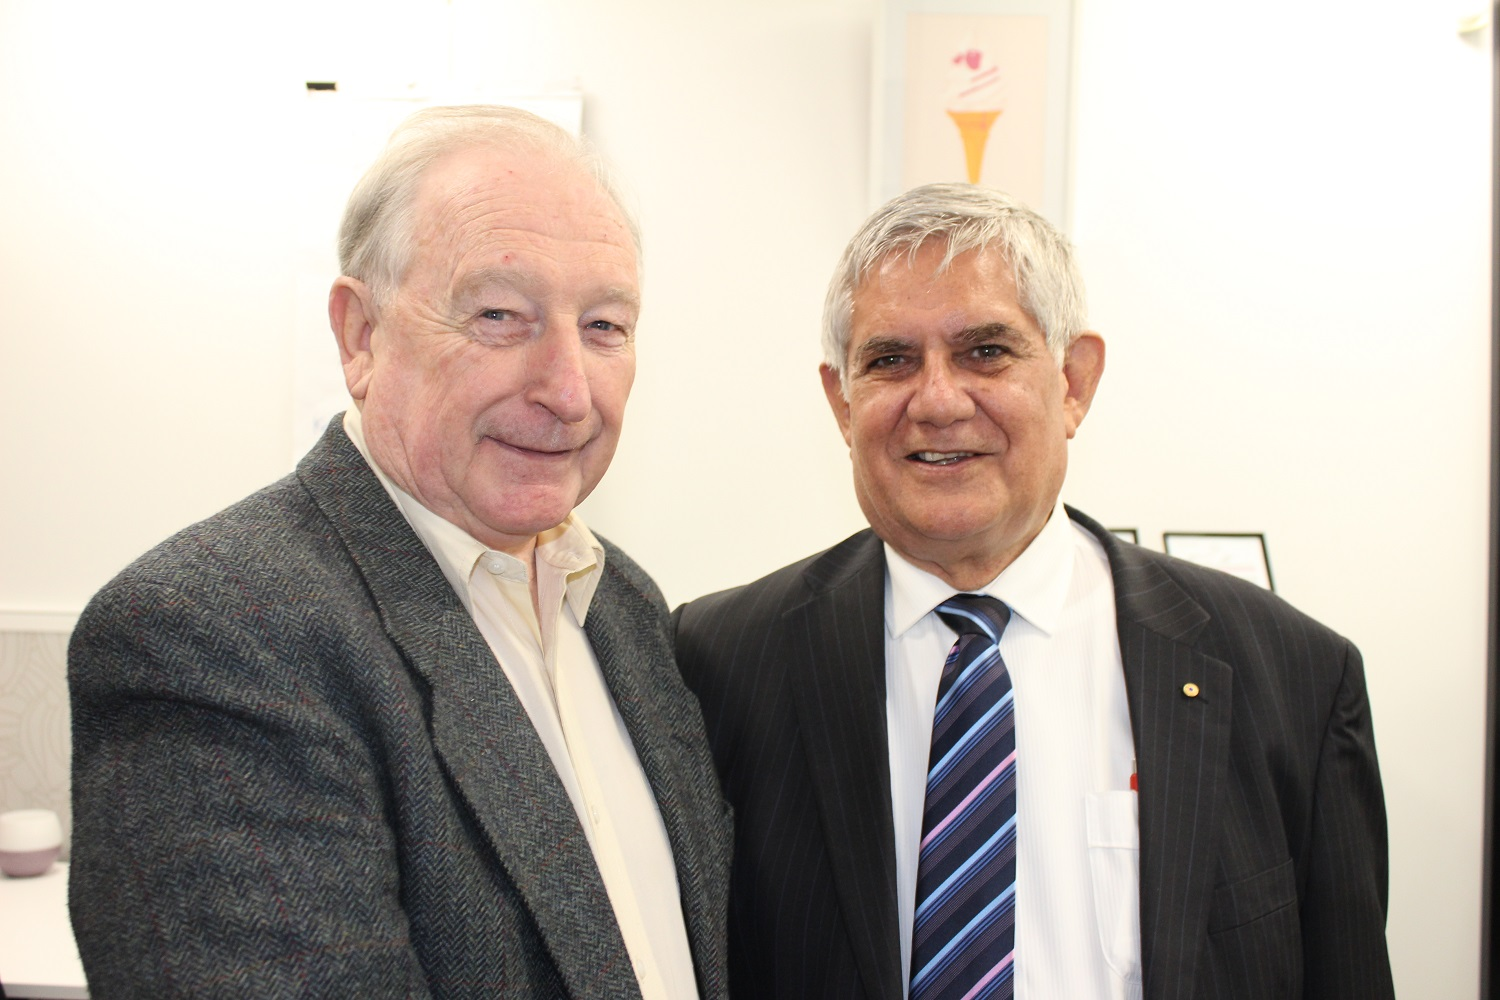 """""""Ken has been amazingly helpful in enabling MRI scans for prostate cancer to be included on the Medicare schedule. This will save men a minimum of $400 and will assist in better diagnosis of prostrate cancer.""""    Bill Munro - West Australian Chairman of the Prostate Cancer Foundation of Australia     Read more"""